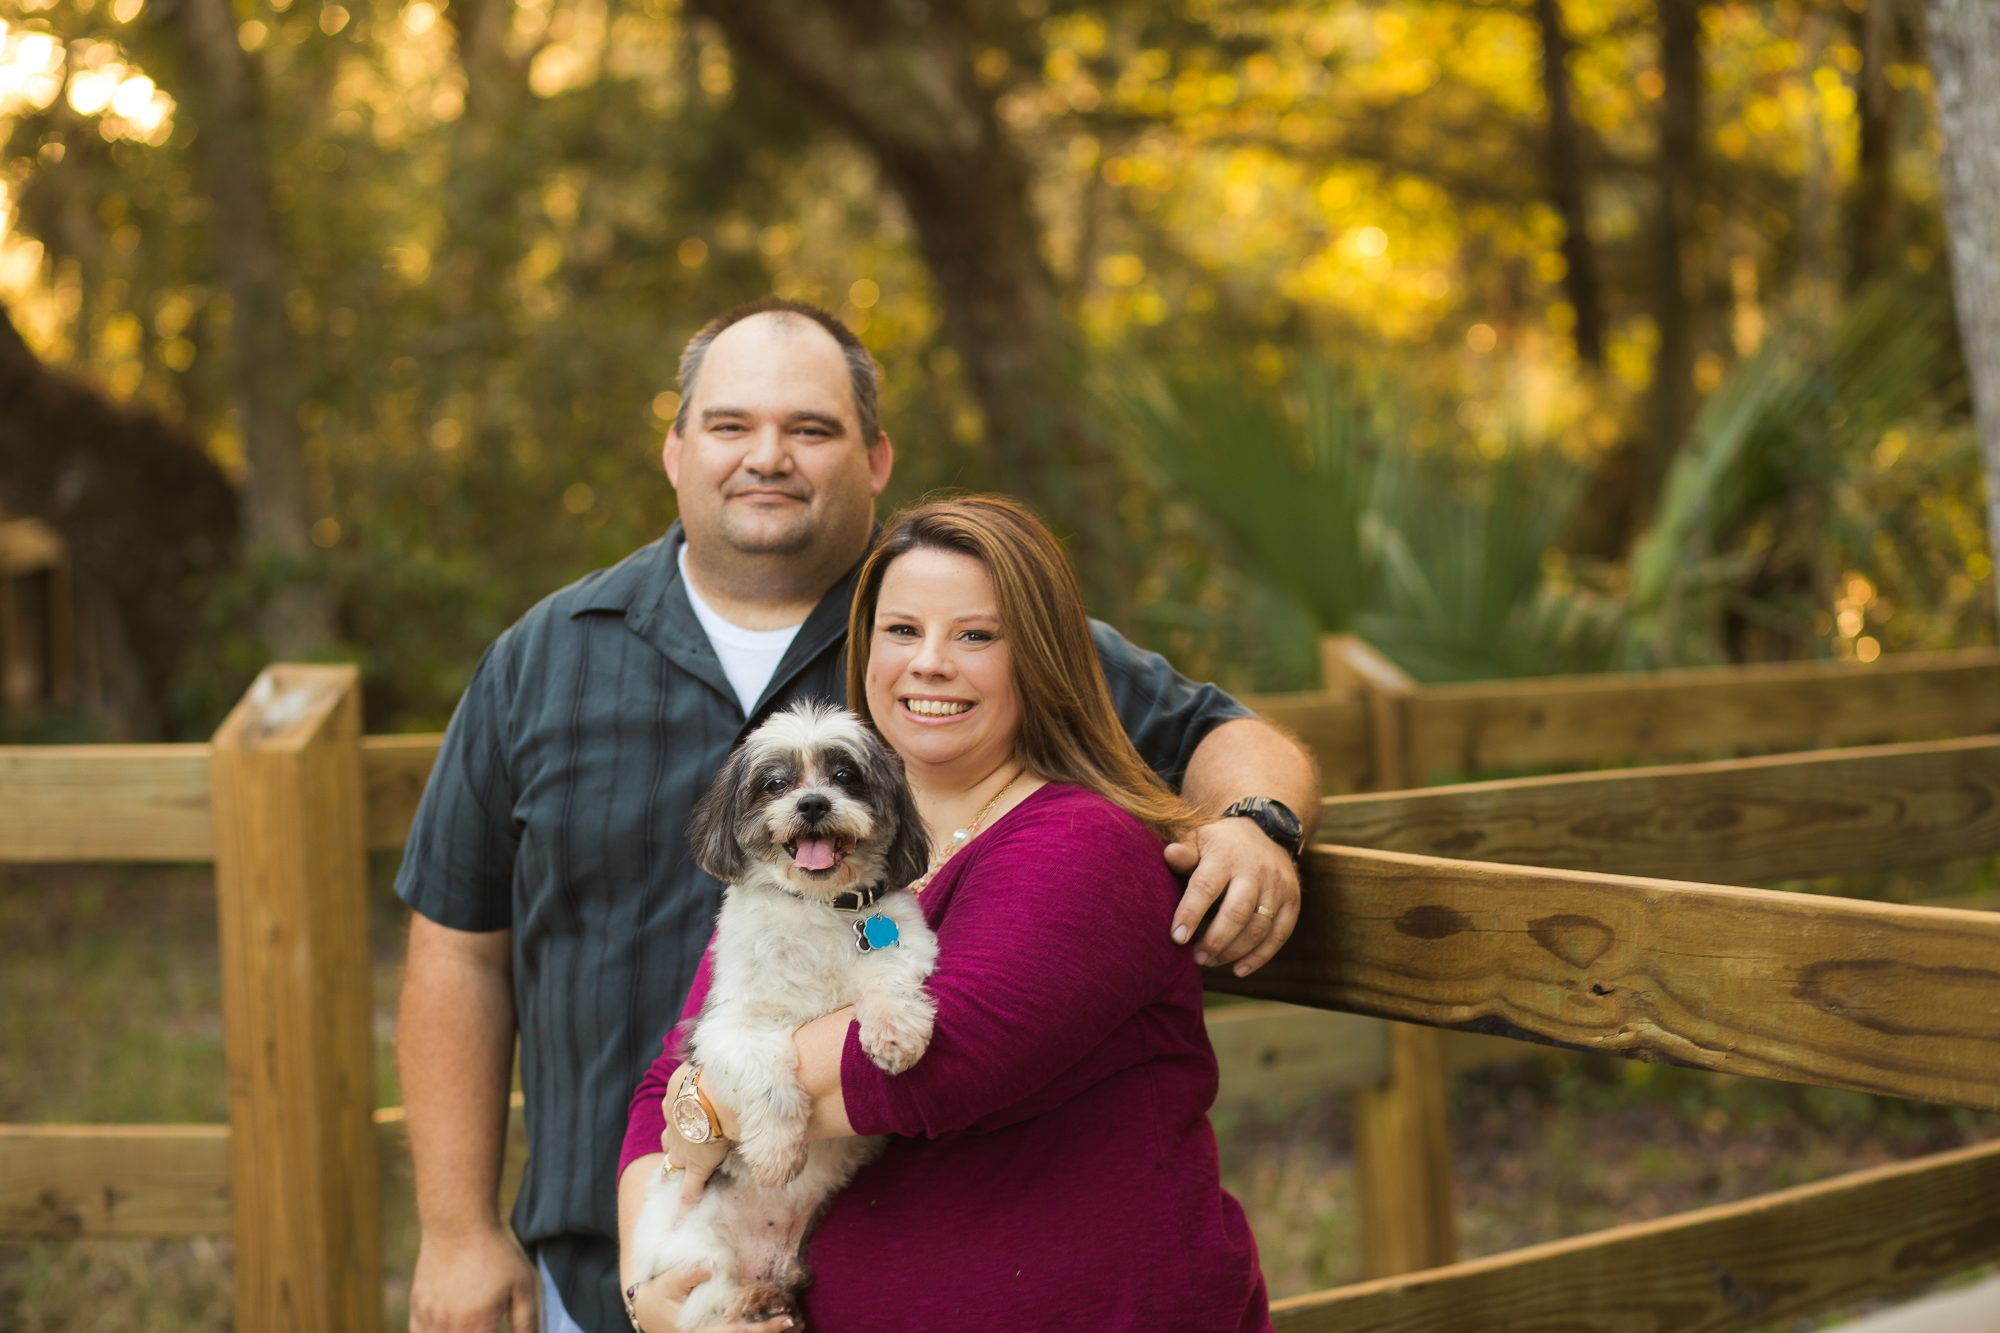 Daytona Beach Photographer portrait session at blue springs state park in central florida